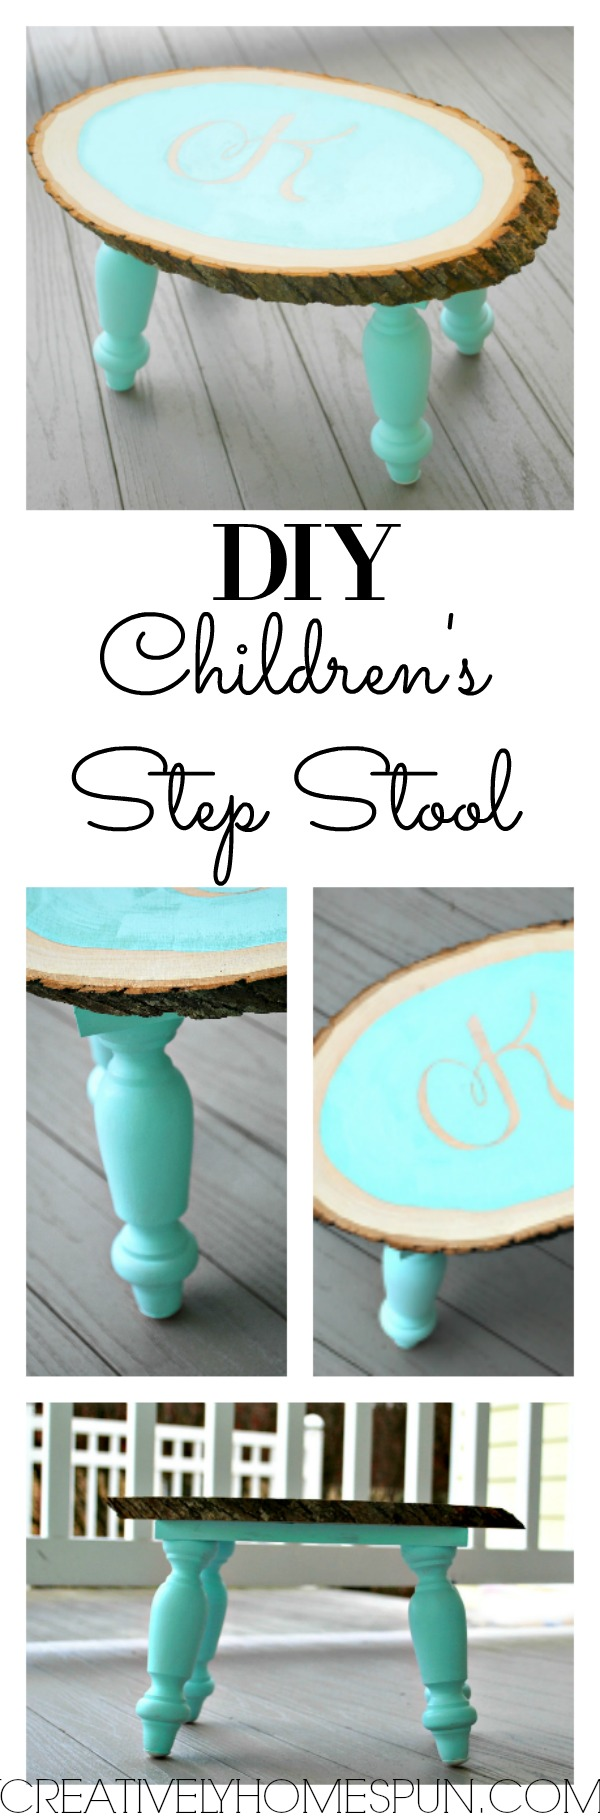 DIY Children's Step Stool #Createandsharechallenge #DIYdecor #walnuthollow